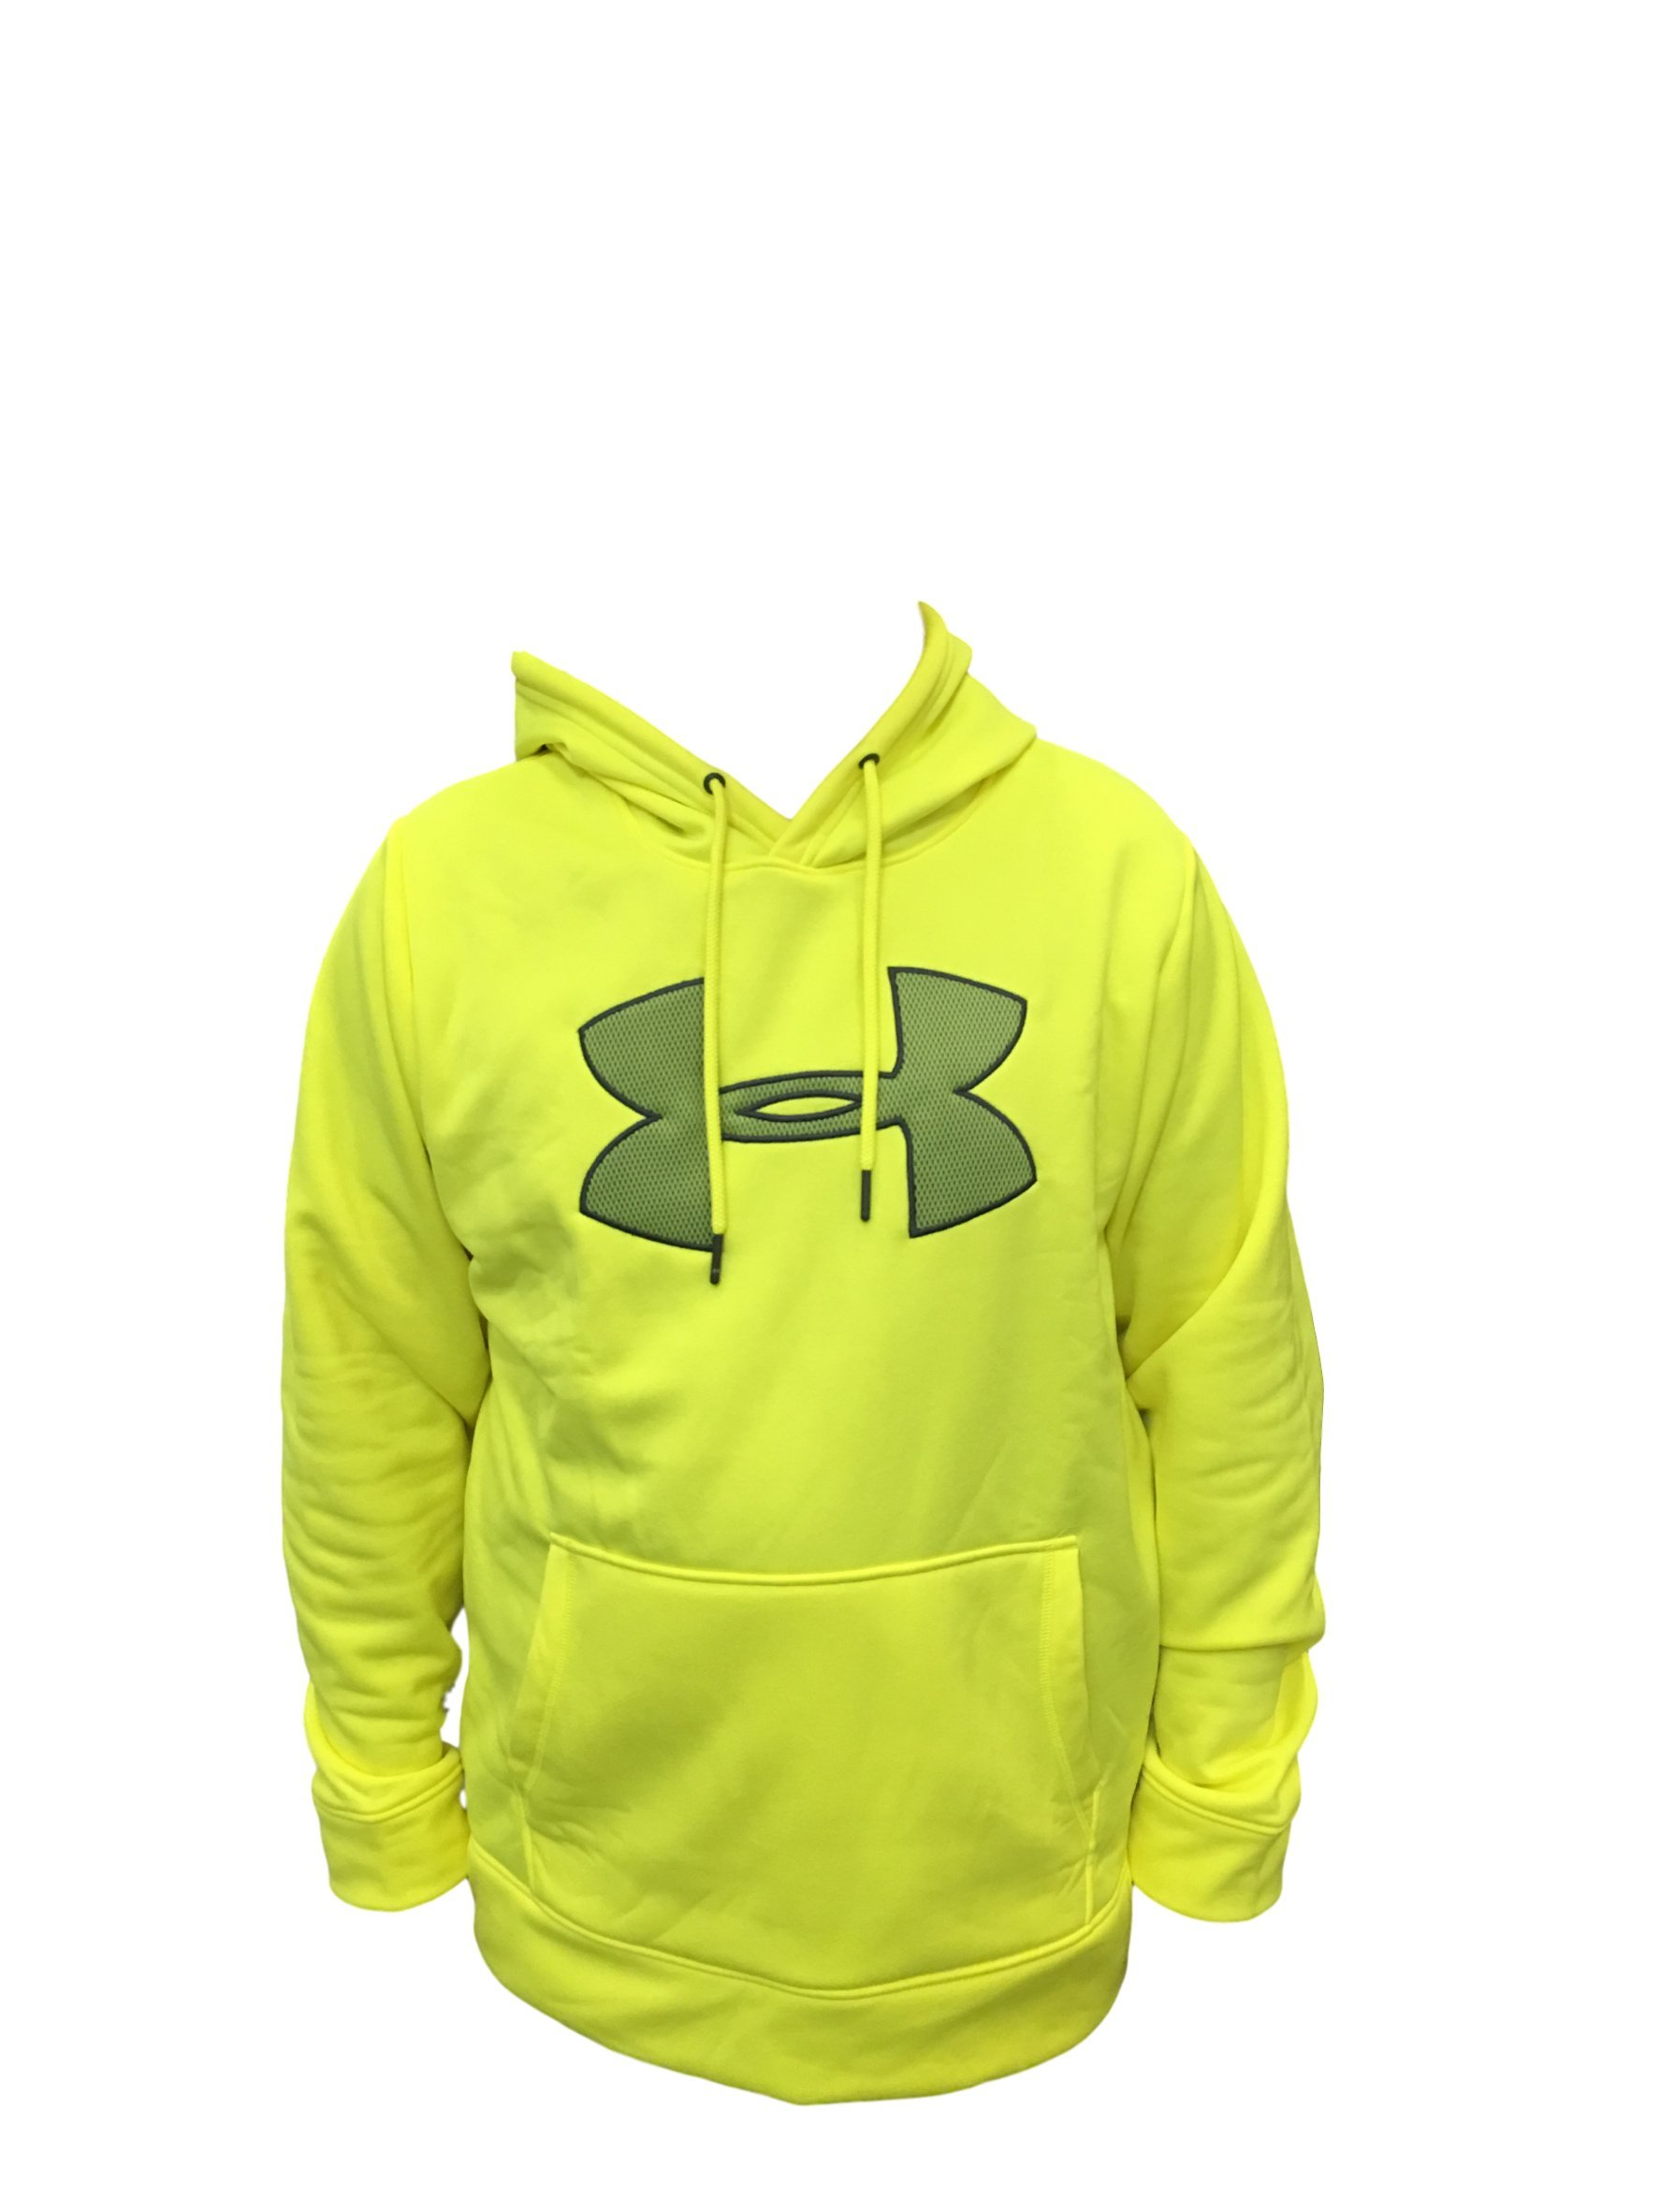 24a66d24f4f04 Galleon - Under Armour Mens Storm Caliber Hoodie (Large, Yellow)